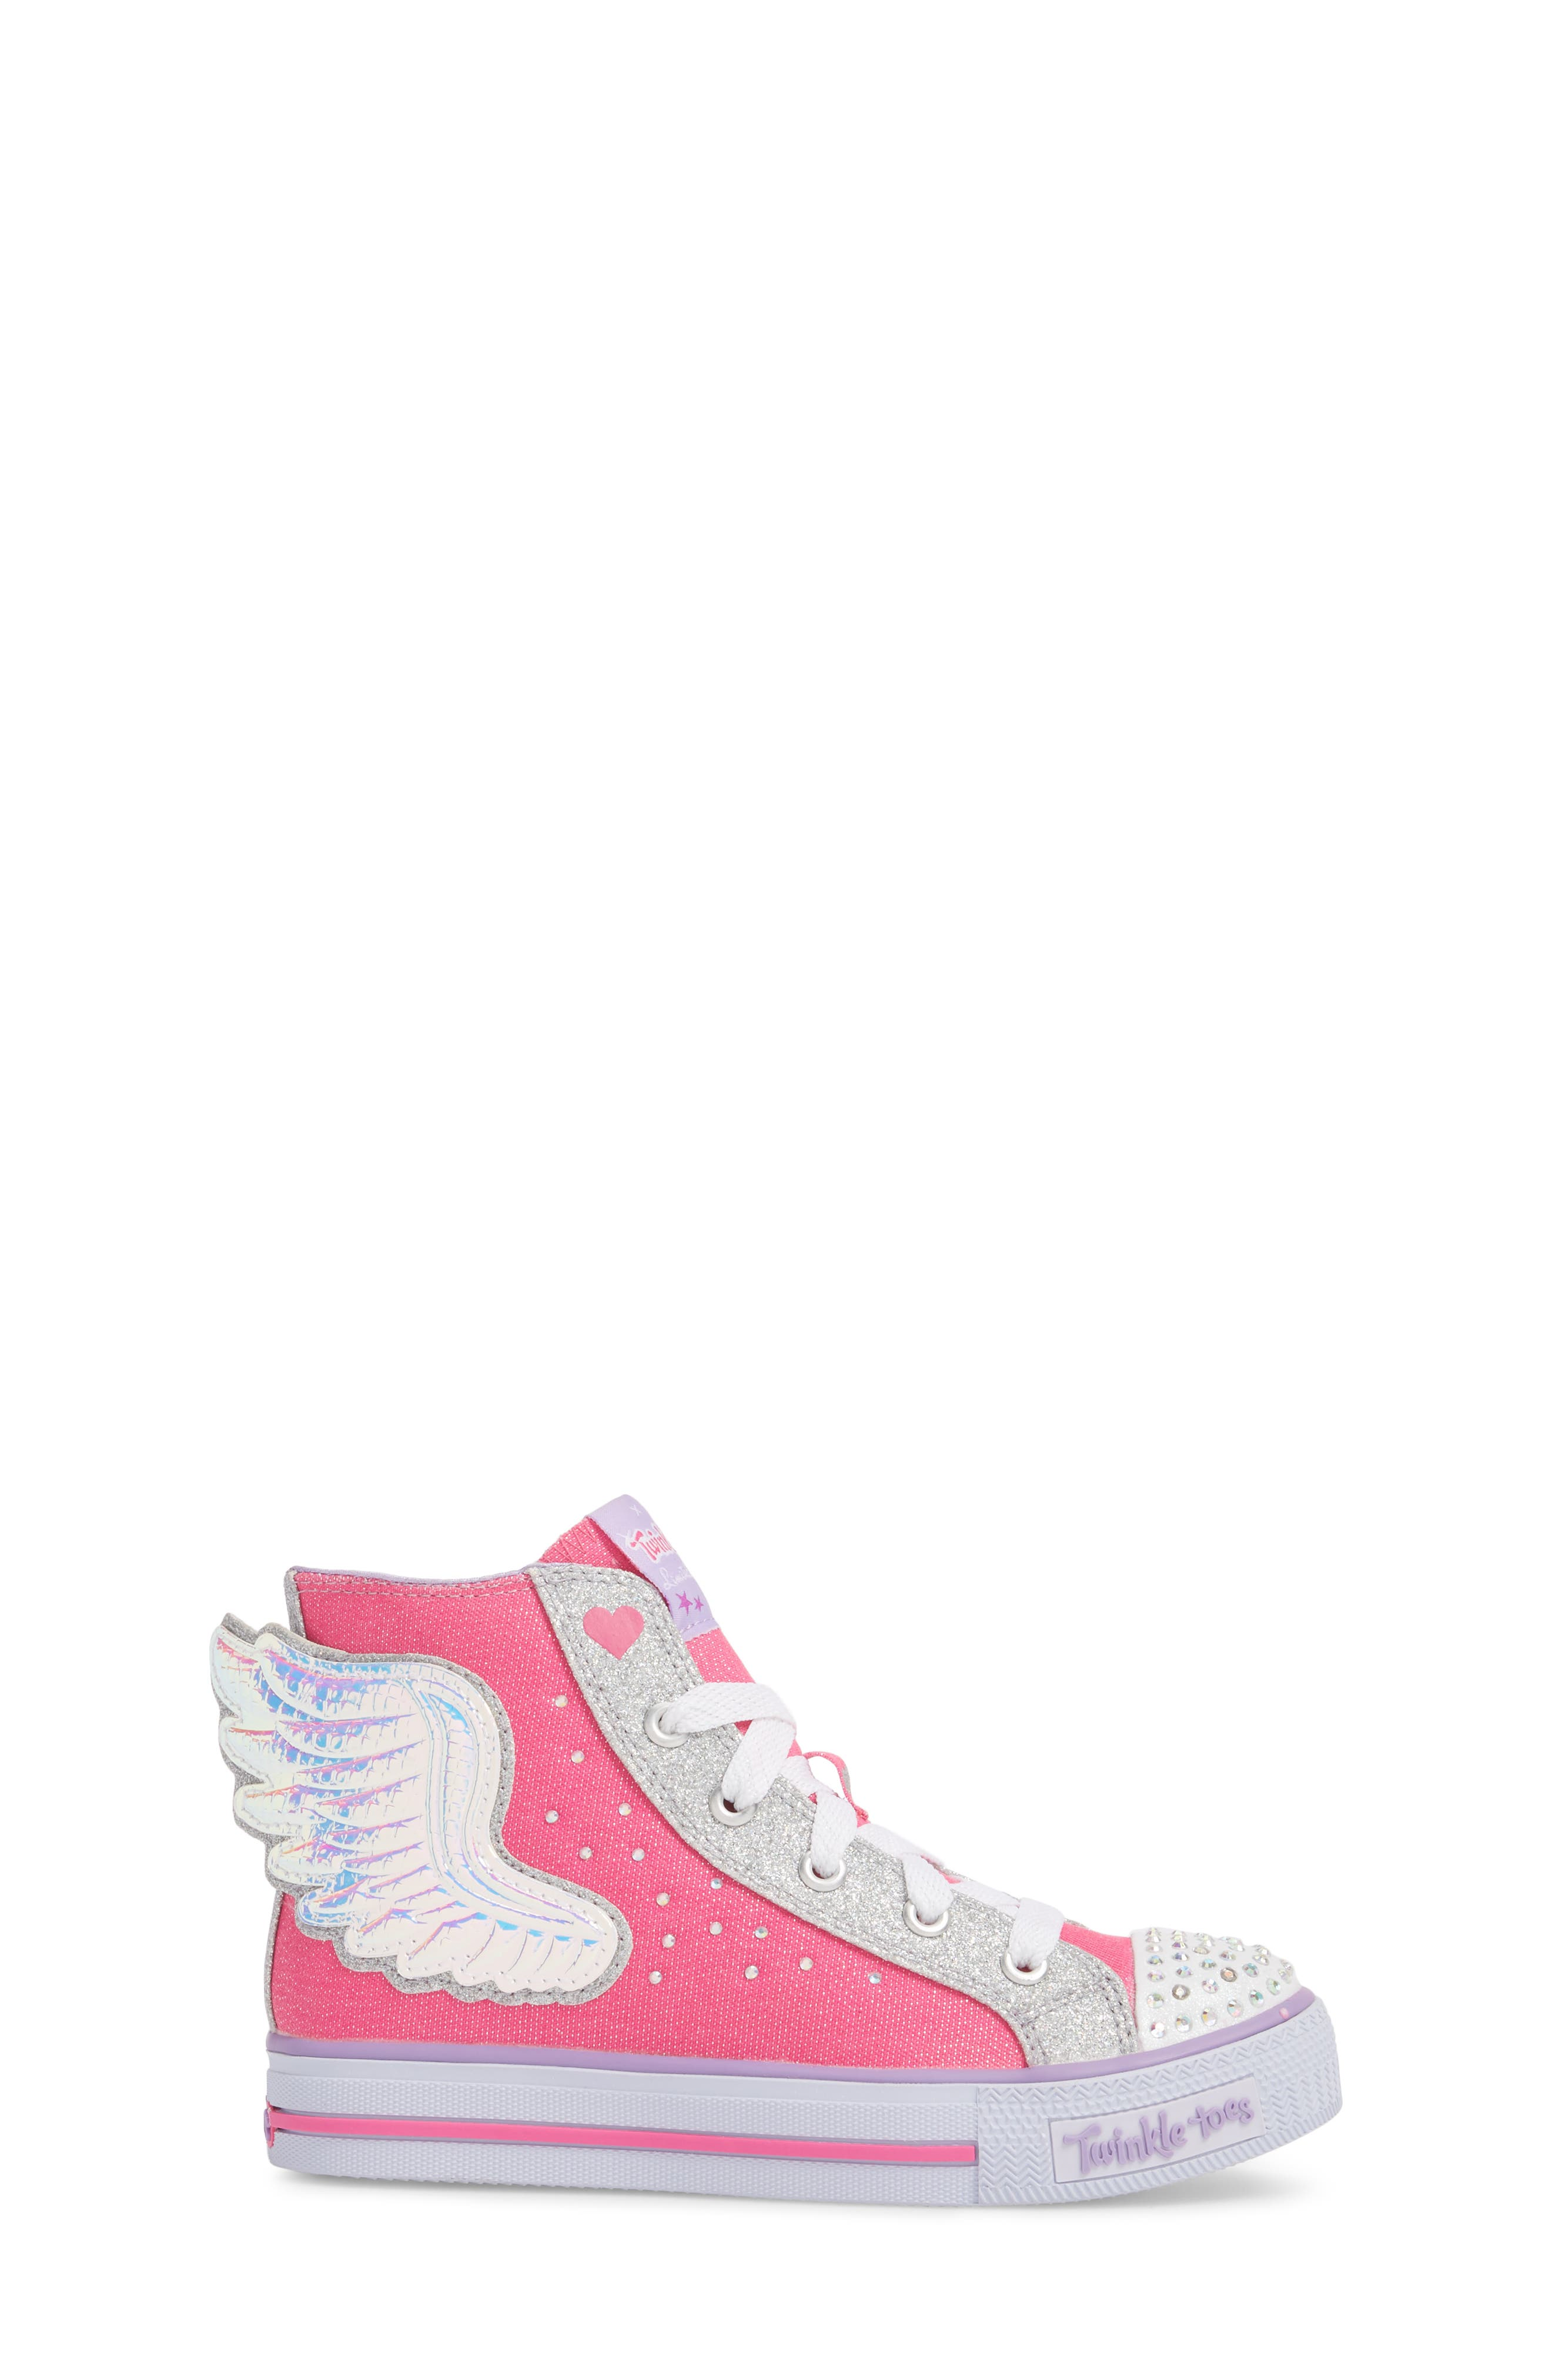 Twinkle Toes Shuffles Wonder Wings Light-Up High Top Sneaker,                             Alternate thumbnail 3, color,                             Hot Pink/ Silver